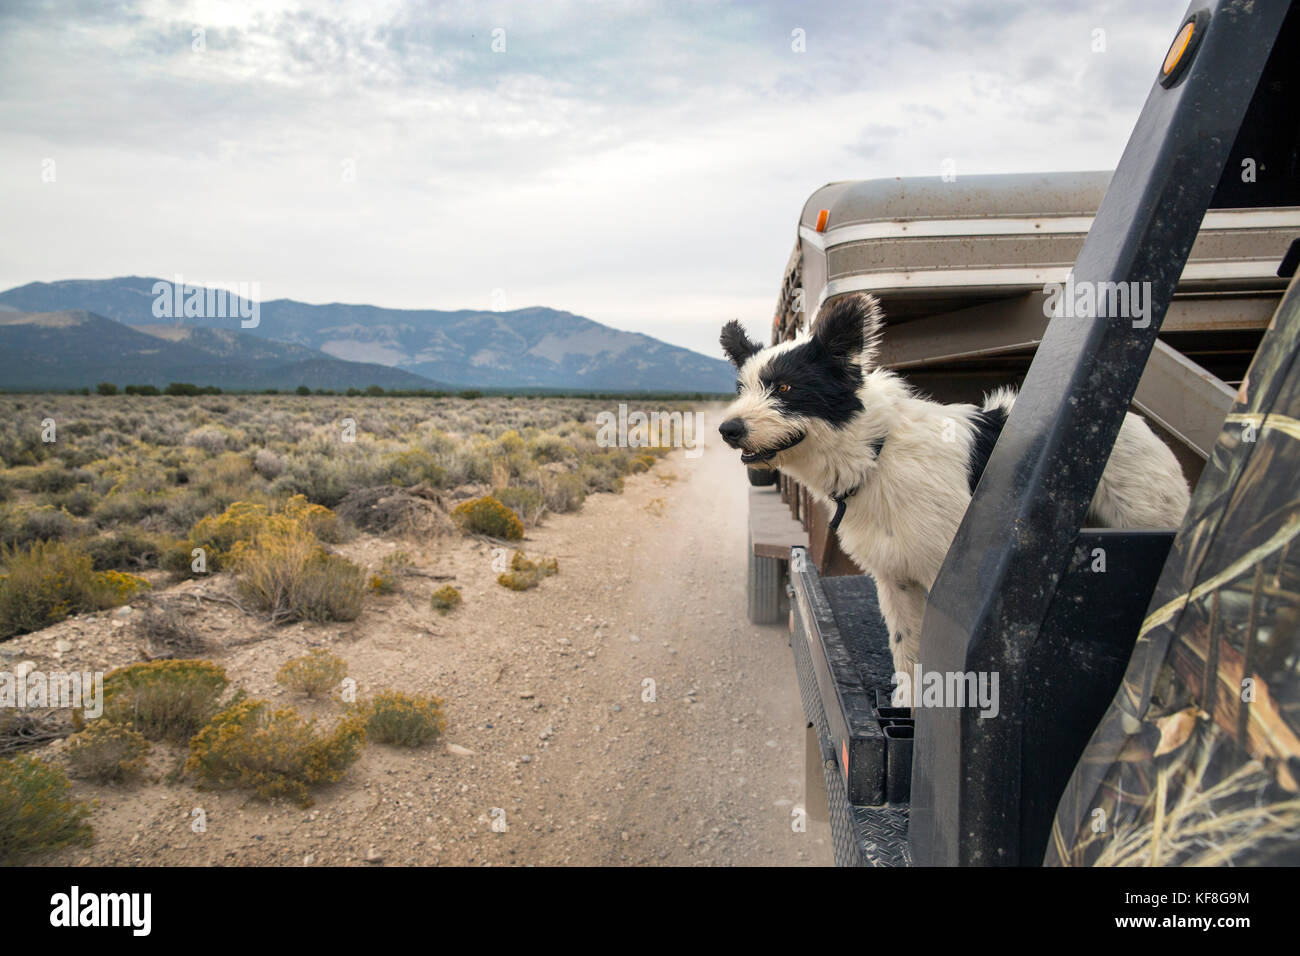 USA, Nevada, Wells, a few of the ranch dogs along for a ride